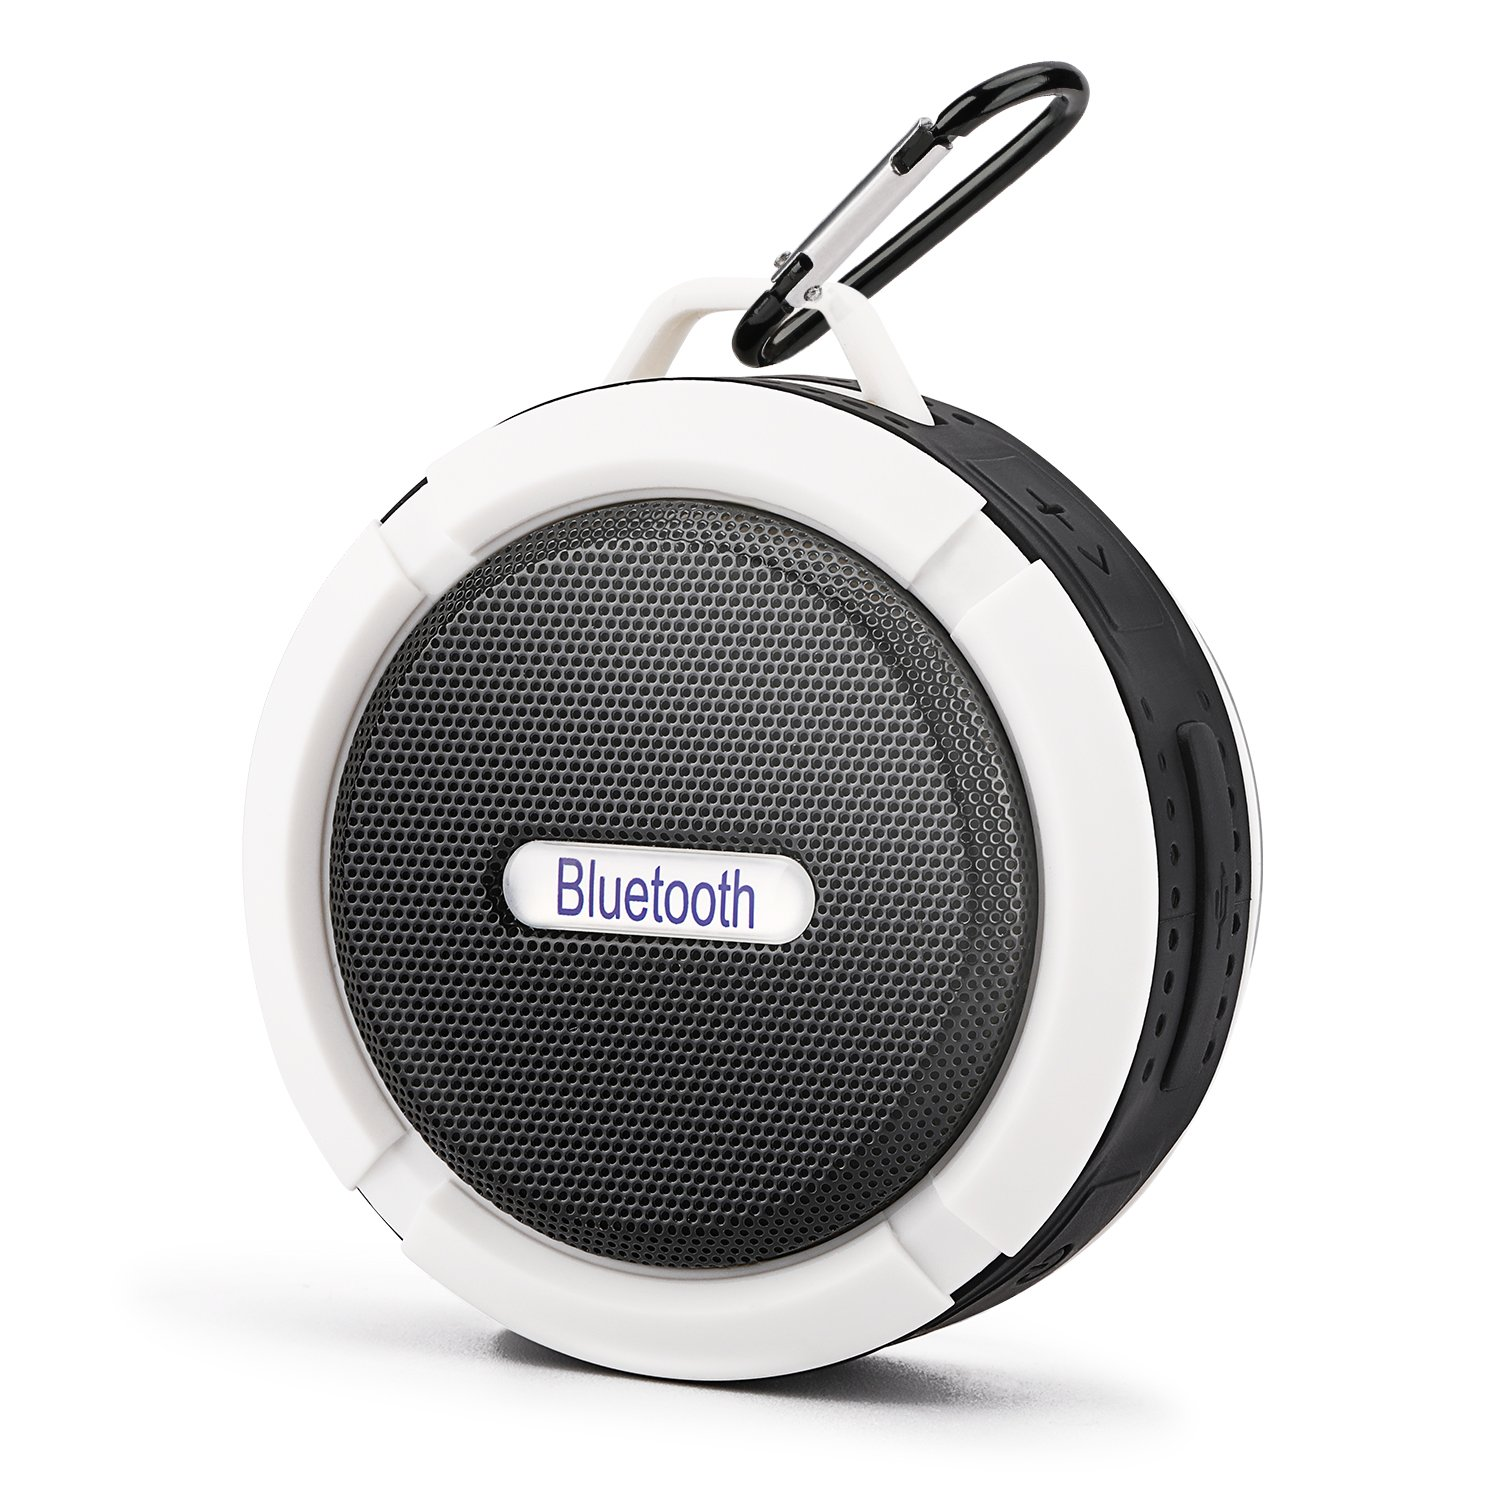 Mini Bluetooth Speaker,Retround Outdoor Speaker with Built-in Mic,High Sound Quality,Waterproof,6hrs of Playtime,Rechargeable,for Travel White